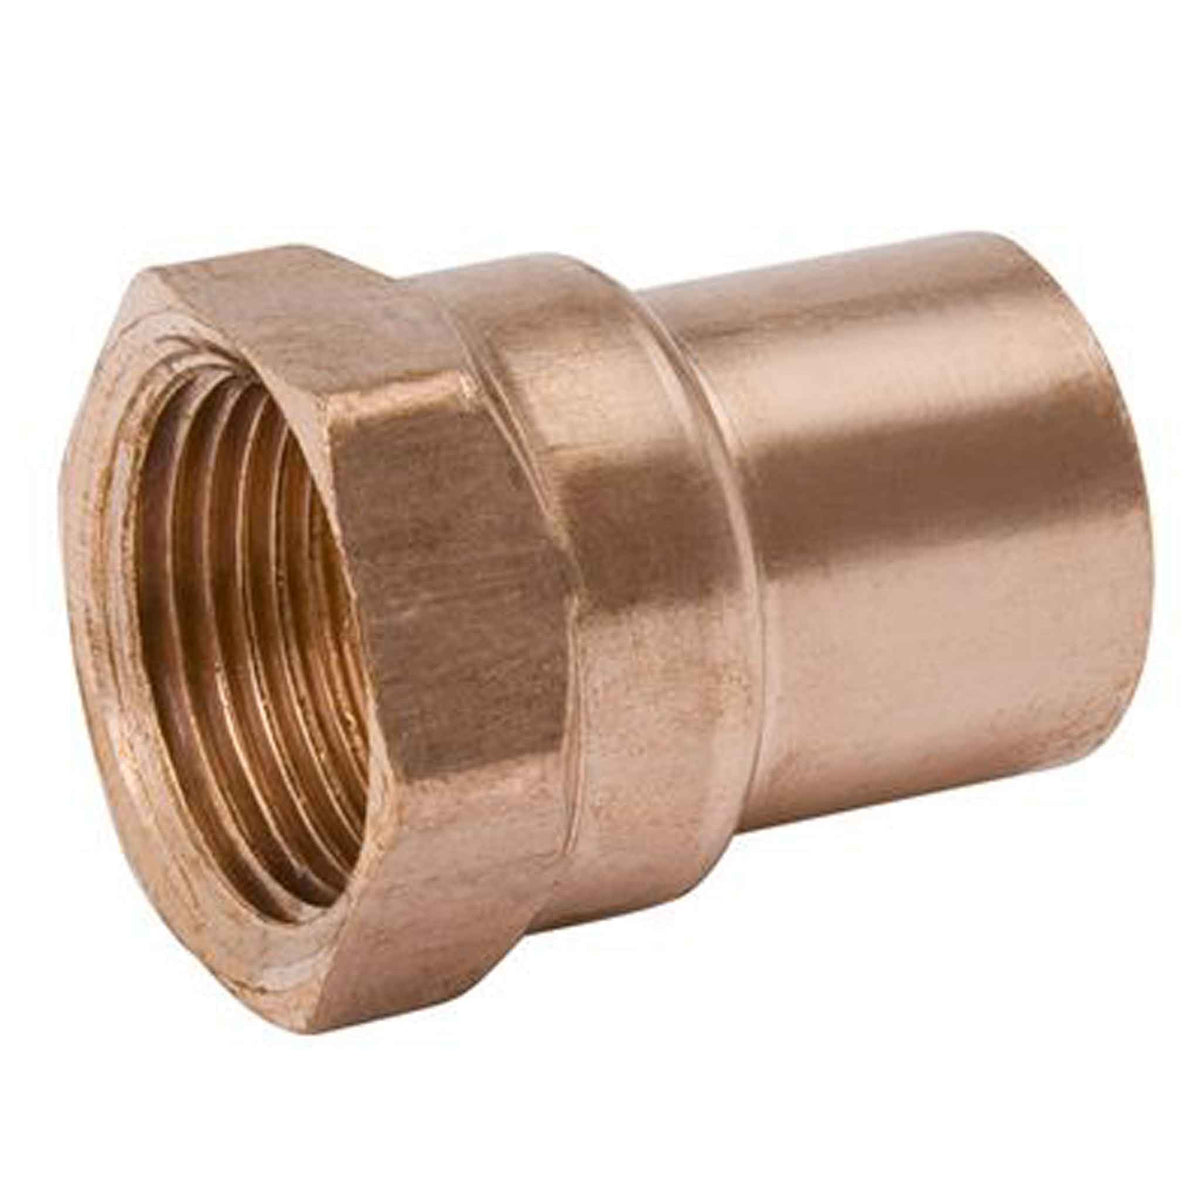 Copper x Female Adapter